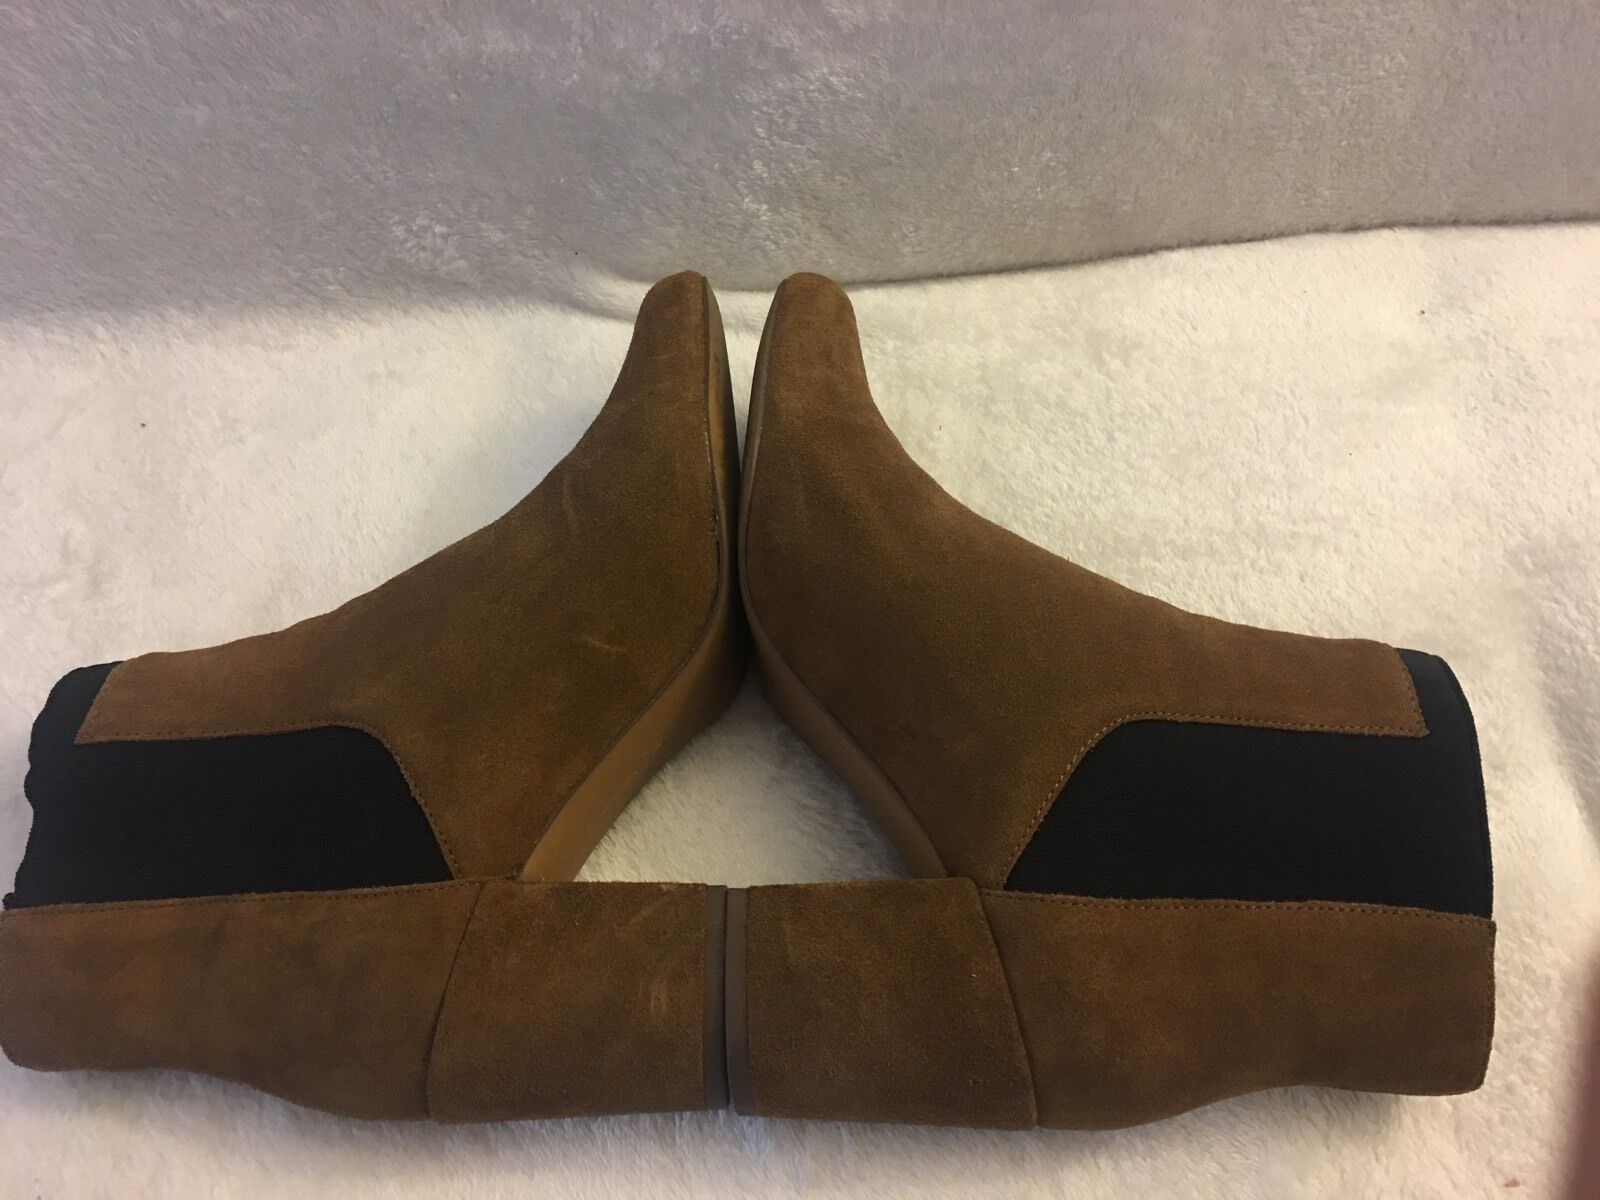 Zara Woman Beige Leather Leather Leather Ankle Boots Med Heel Sz 39 (8-8.5). Worn Only Once e8a626